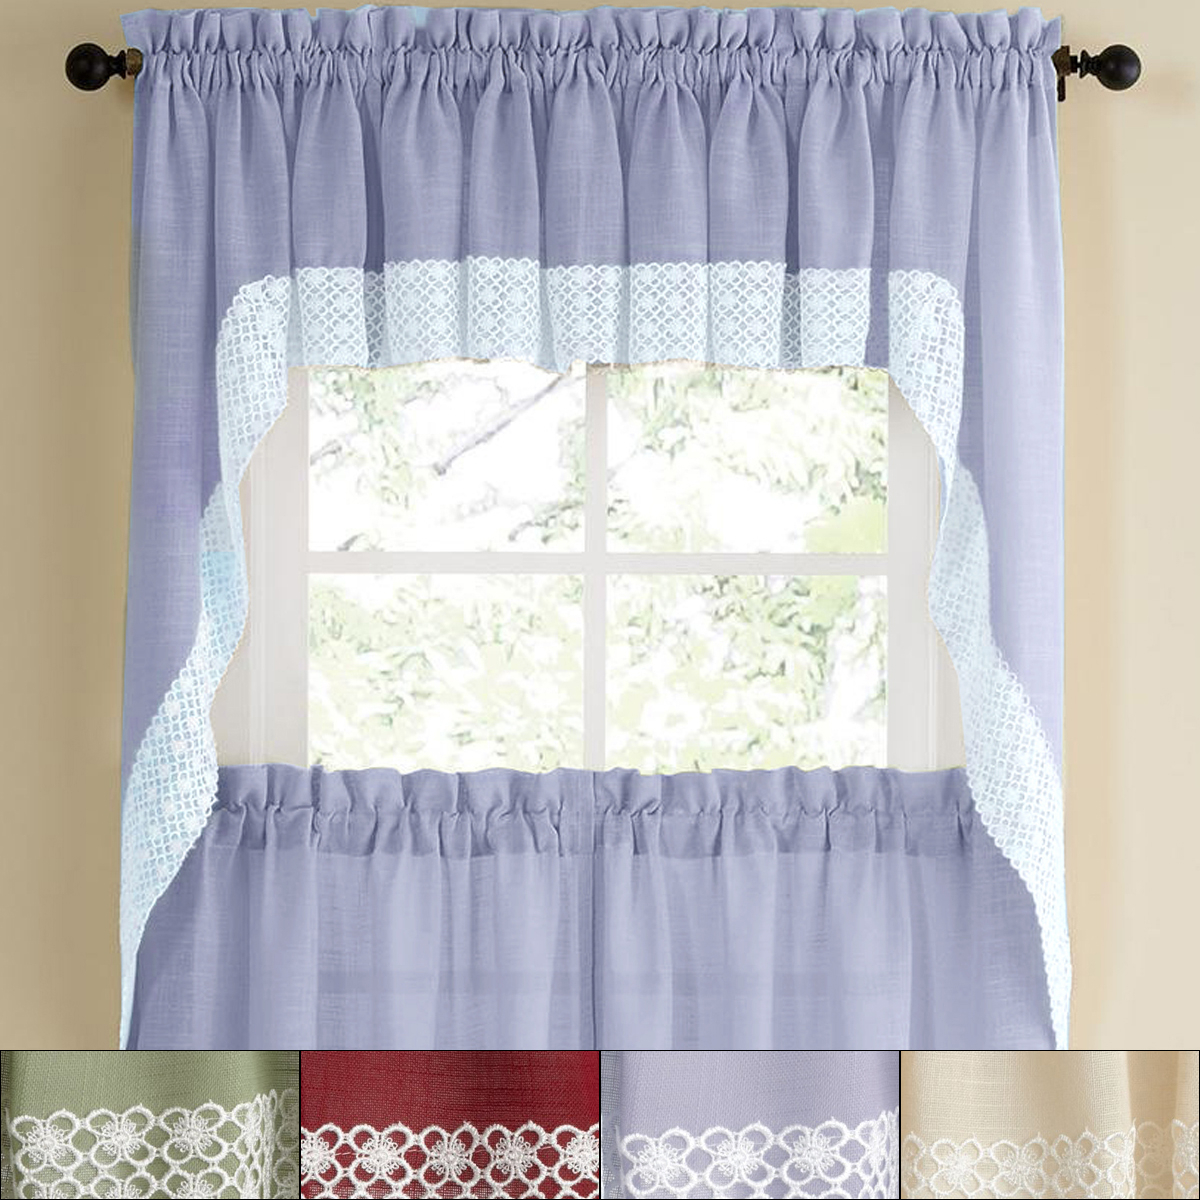 "Details About Salem Kitchen Window Curtain W/ Lace Trim – 38"" Swag Pair Intended For Cotton Lace 5 Piece Window Tier And Swag Sets (View 5 of 20)"